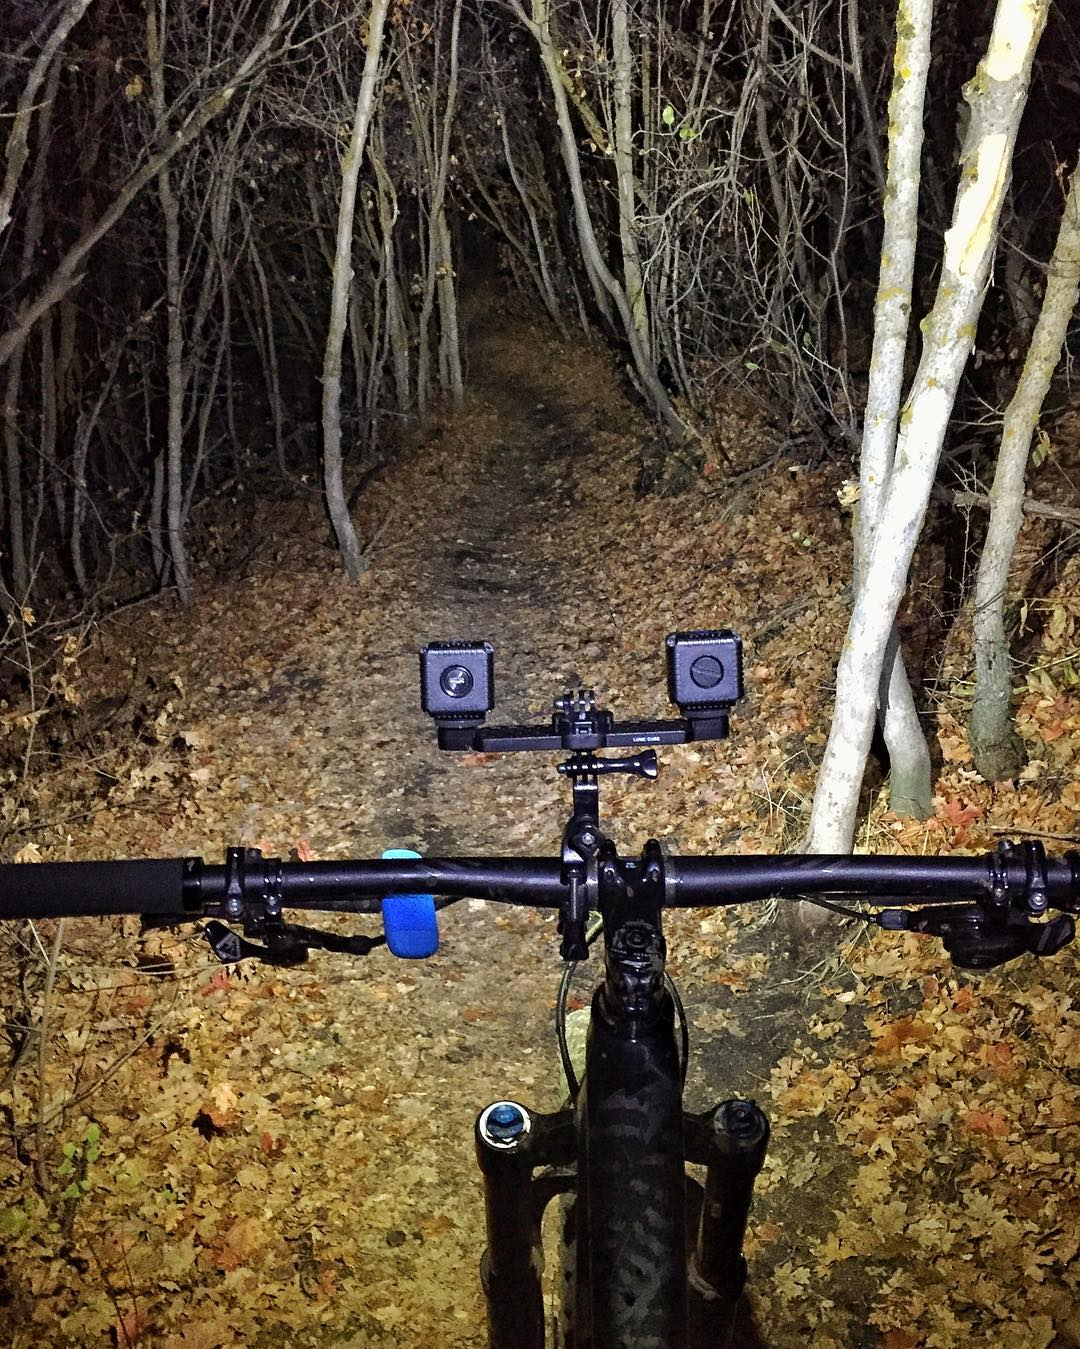 "Working off the jet lag this morning at 5am on the trails here in the mountains of #ParkCity with this sick @LumeCube lighting setup. I love the ""rally style"" inspired look for this lighting. Works great too. #thetrailislit #rallystyle #jetlagsucks"